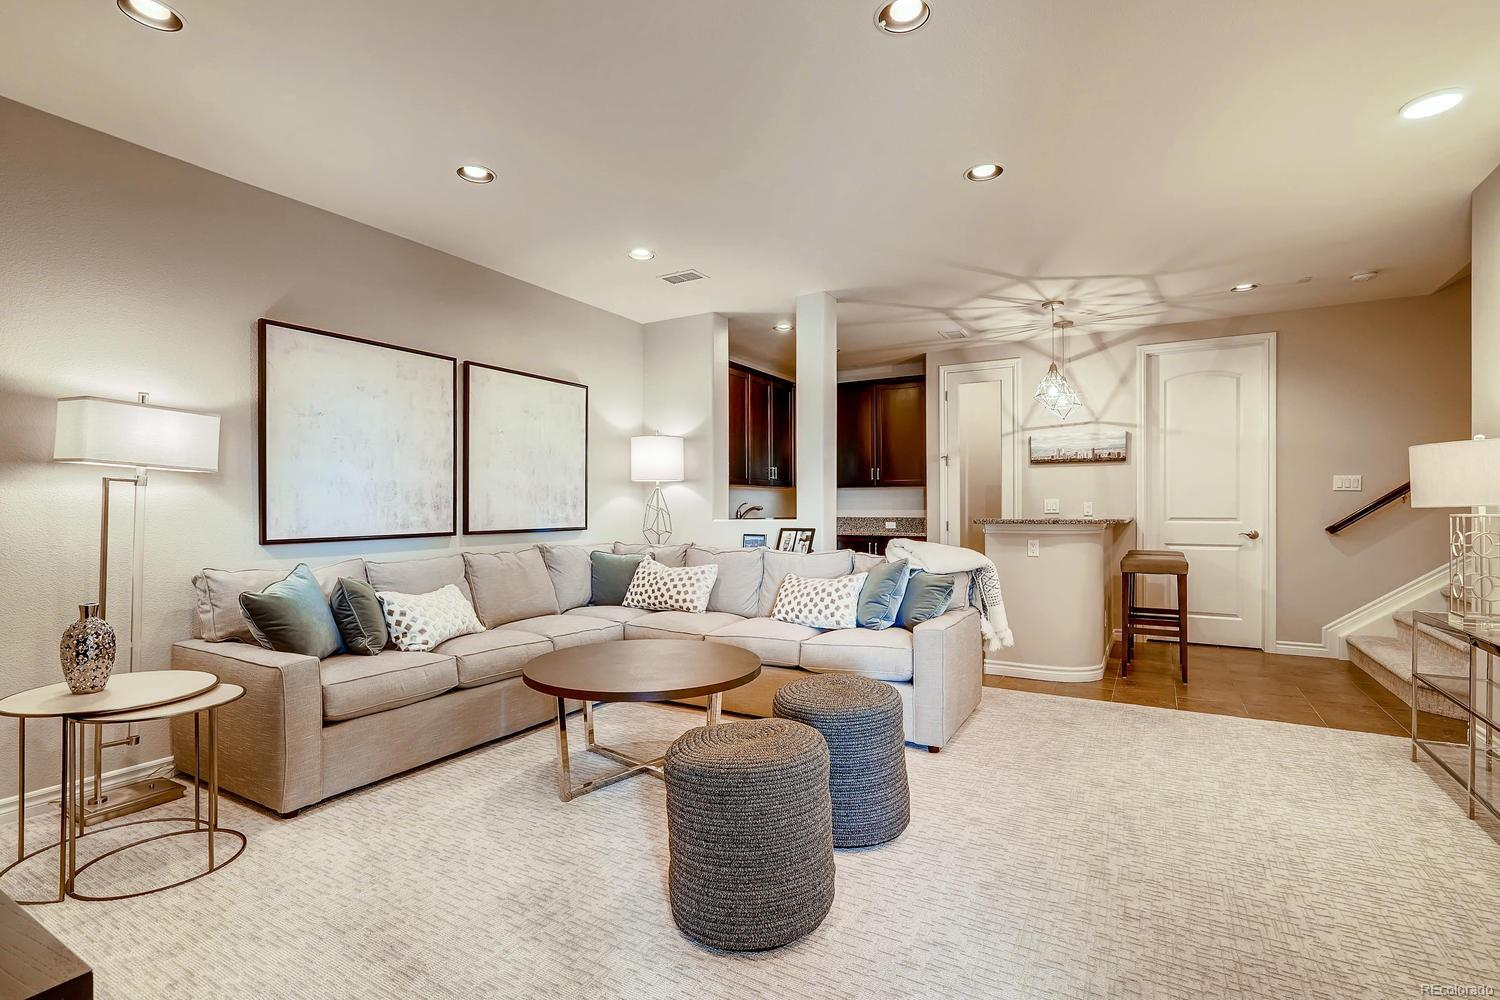 This updated Enoteca floor plan offers a larger wet bar area, more spacious fami